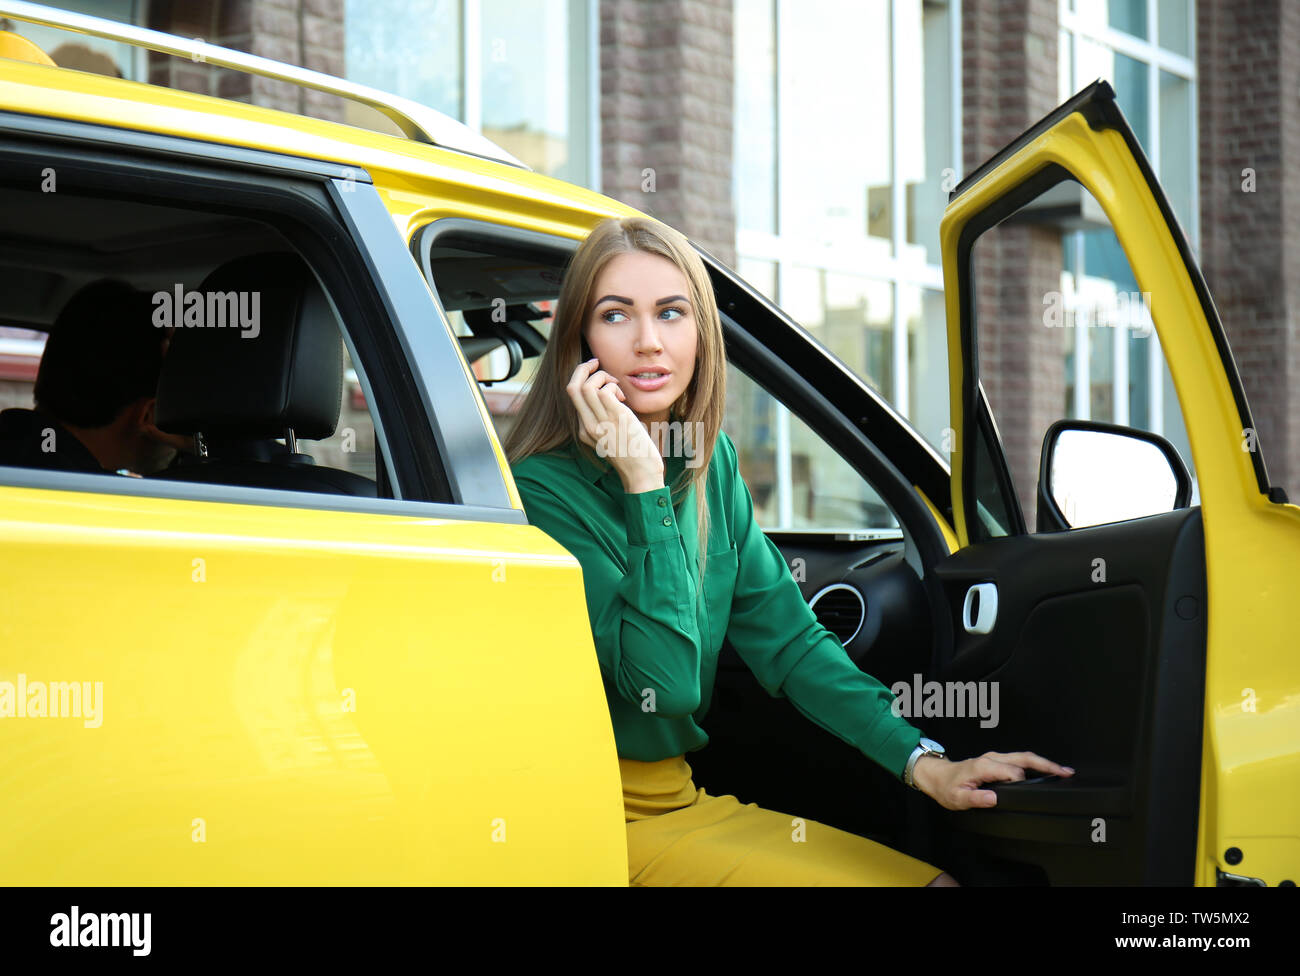 Young woman talking on phone in taxi car - Stock Image